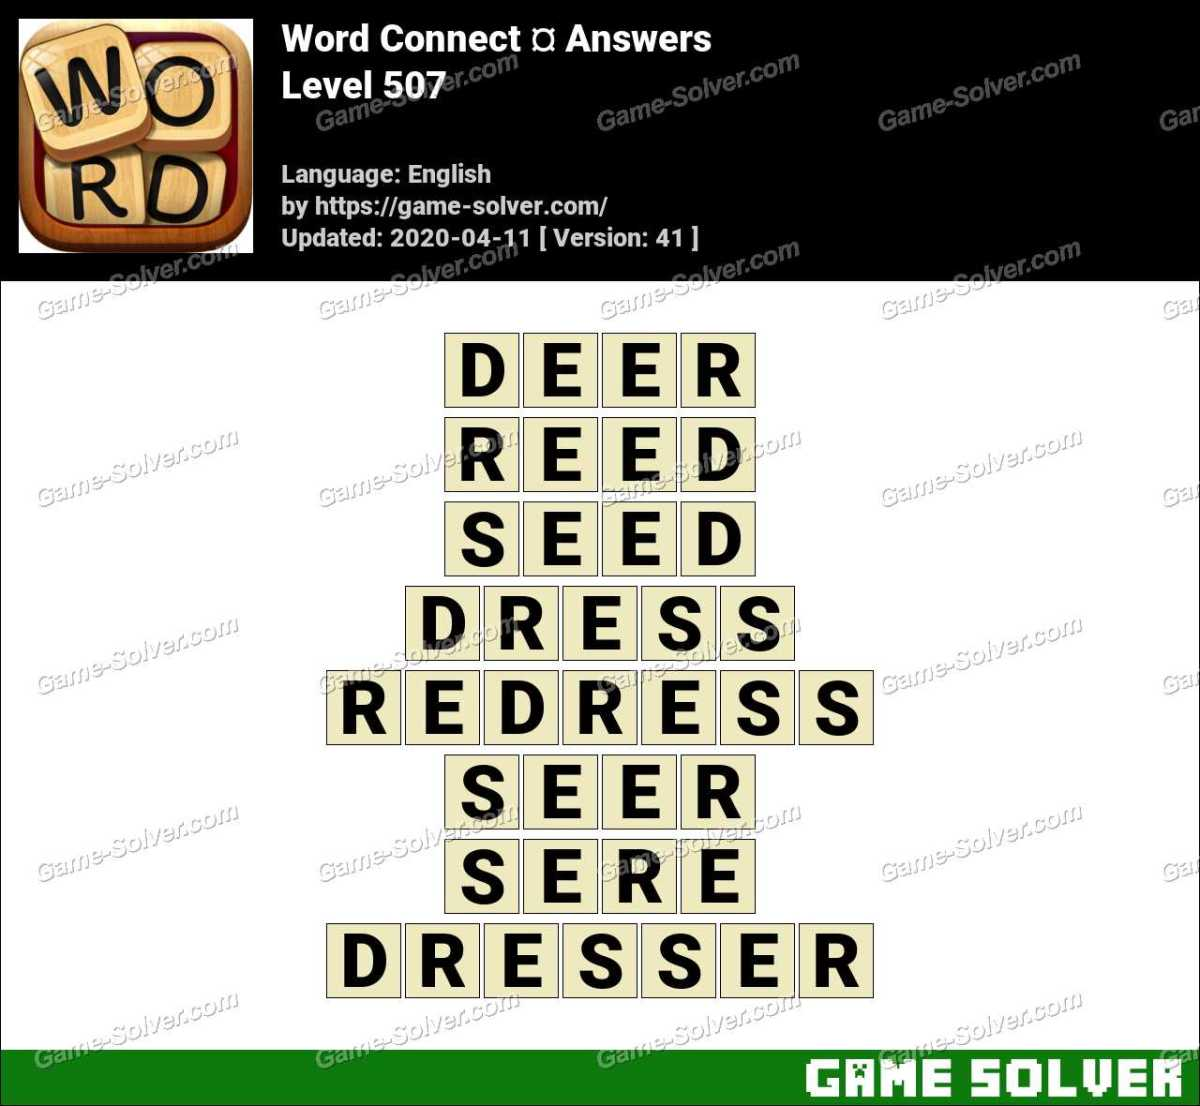 Word Connect Level 507 Answers